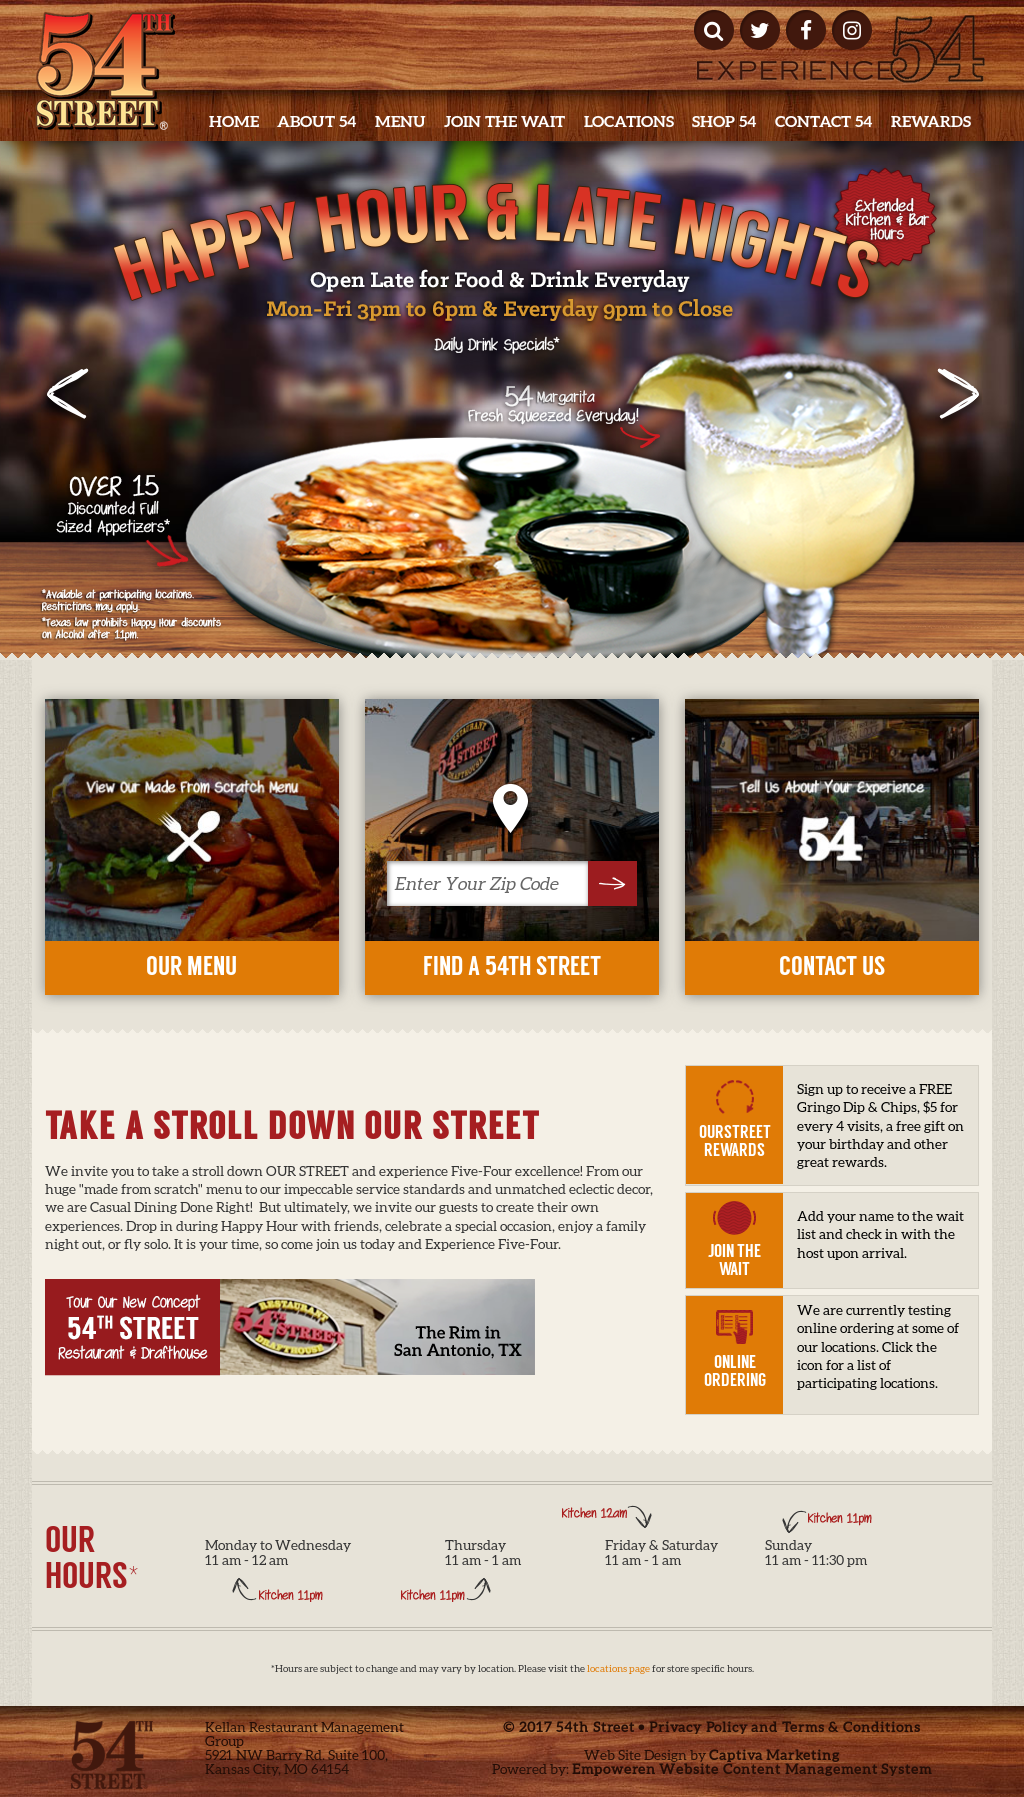 54th street grill and bar competitors, revenue and employees - owler